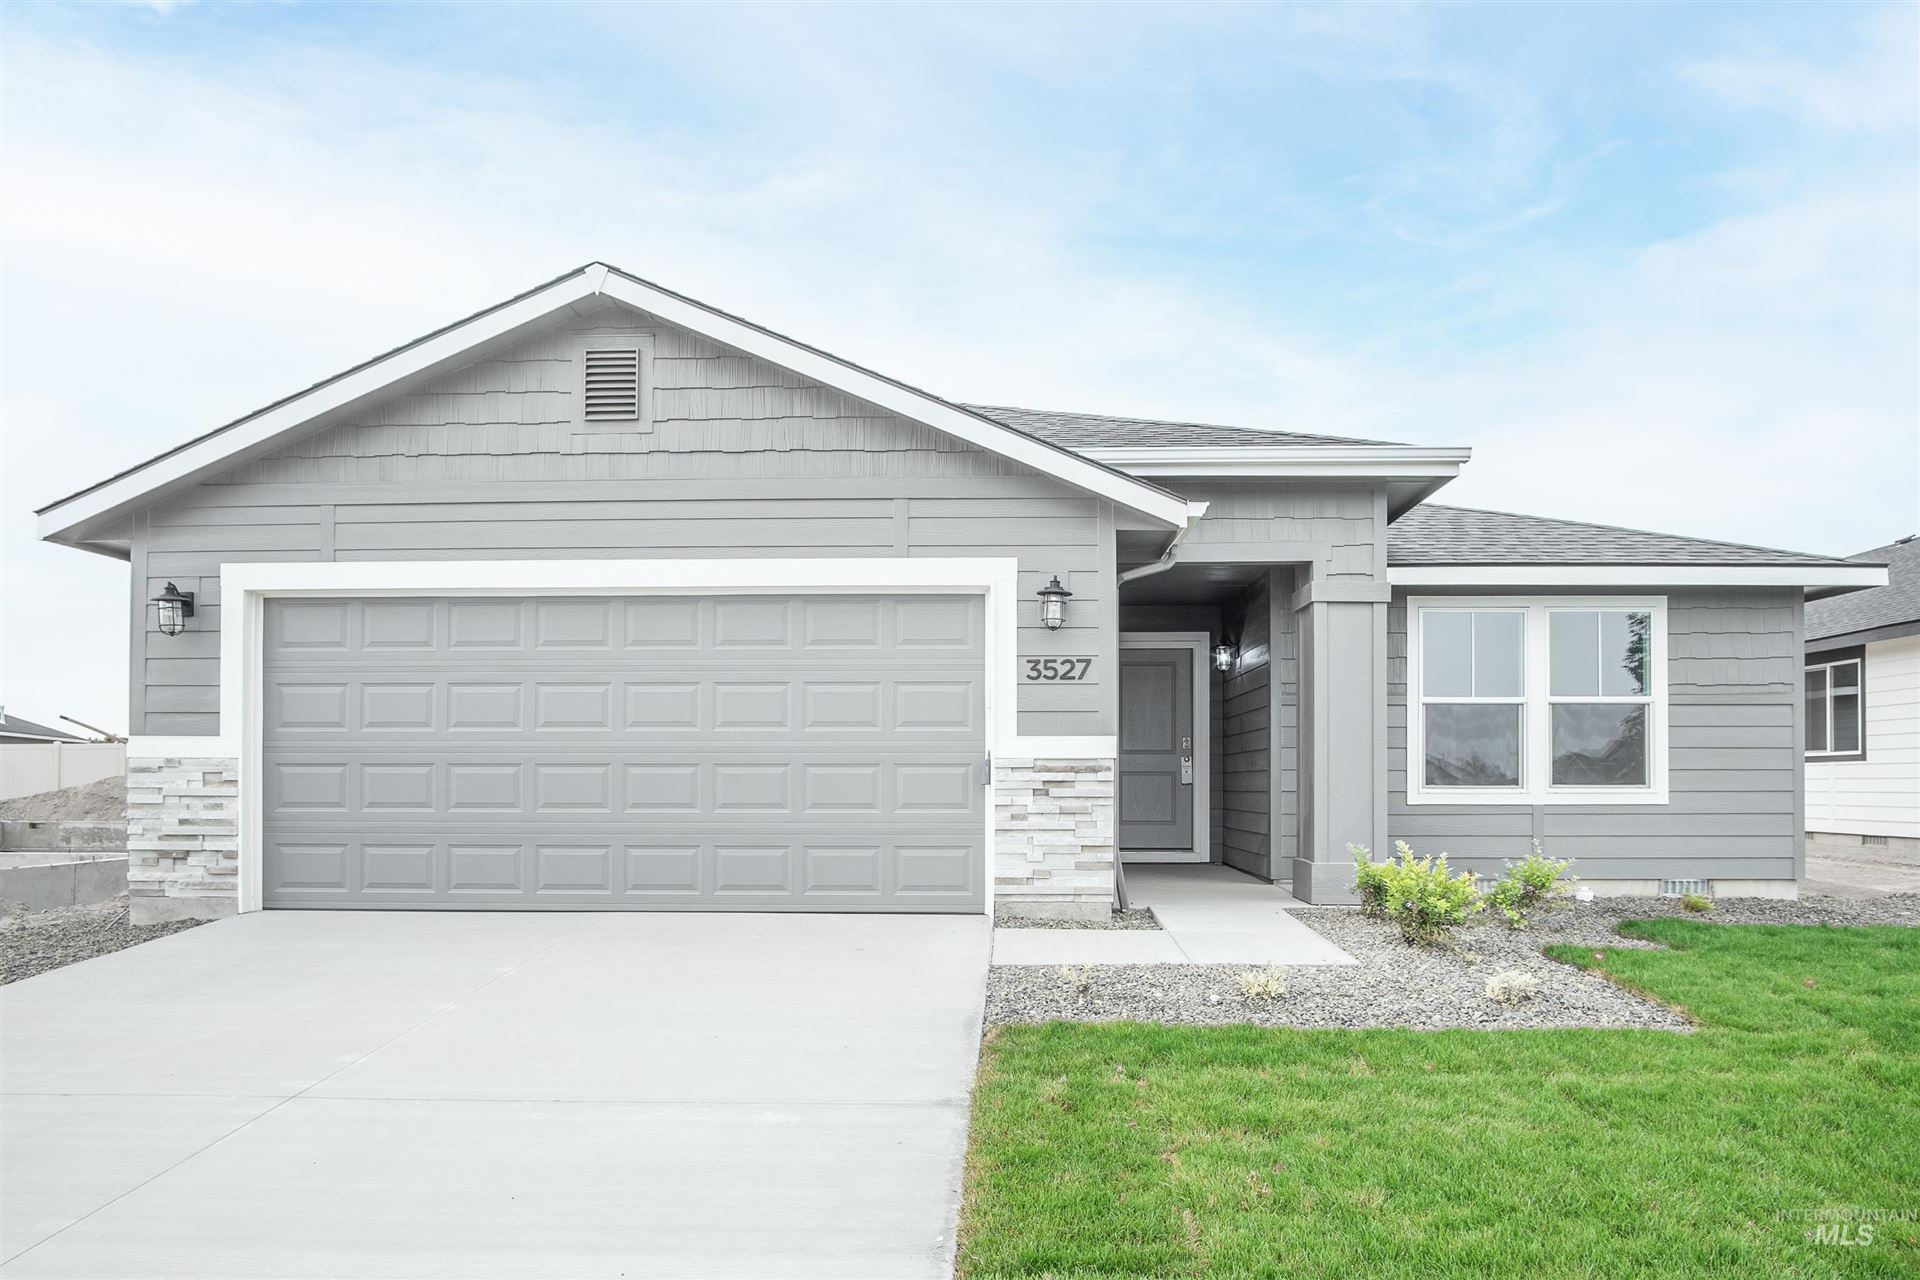 3527 W Remembrance Dr, Meridian, ID 83642 - MLS#: 98811633